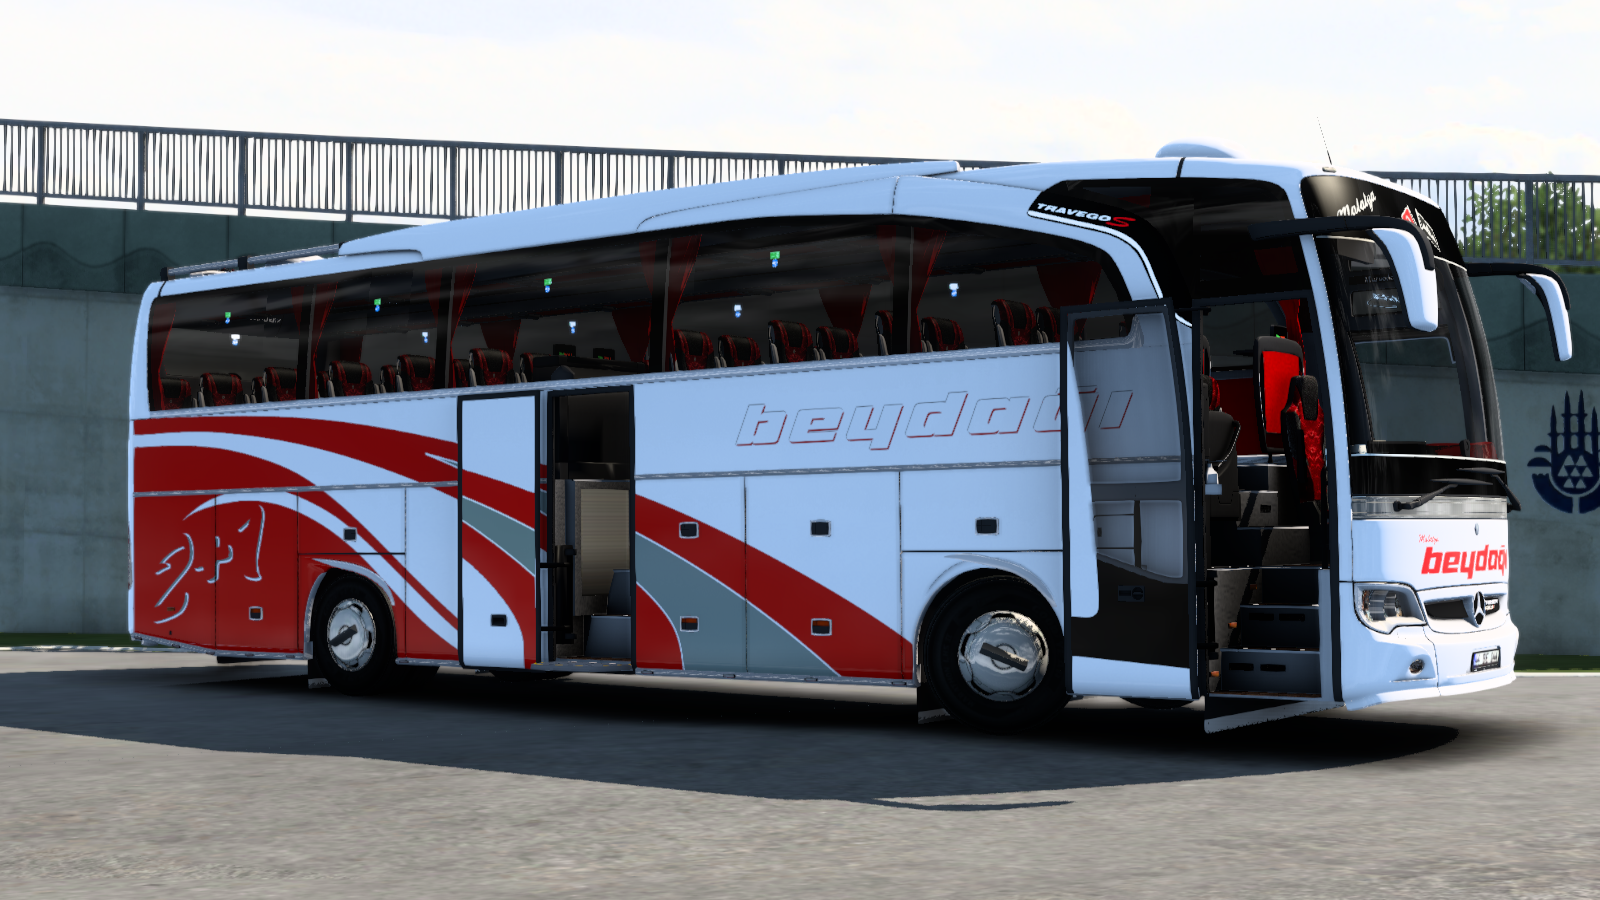 ets2_20210926_220955_00.png